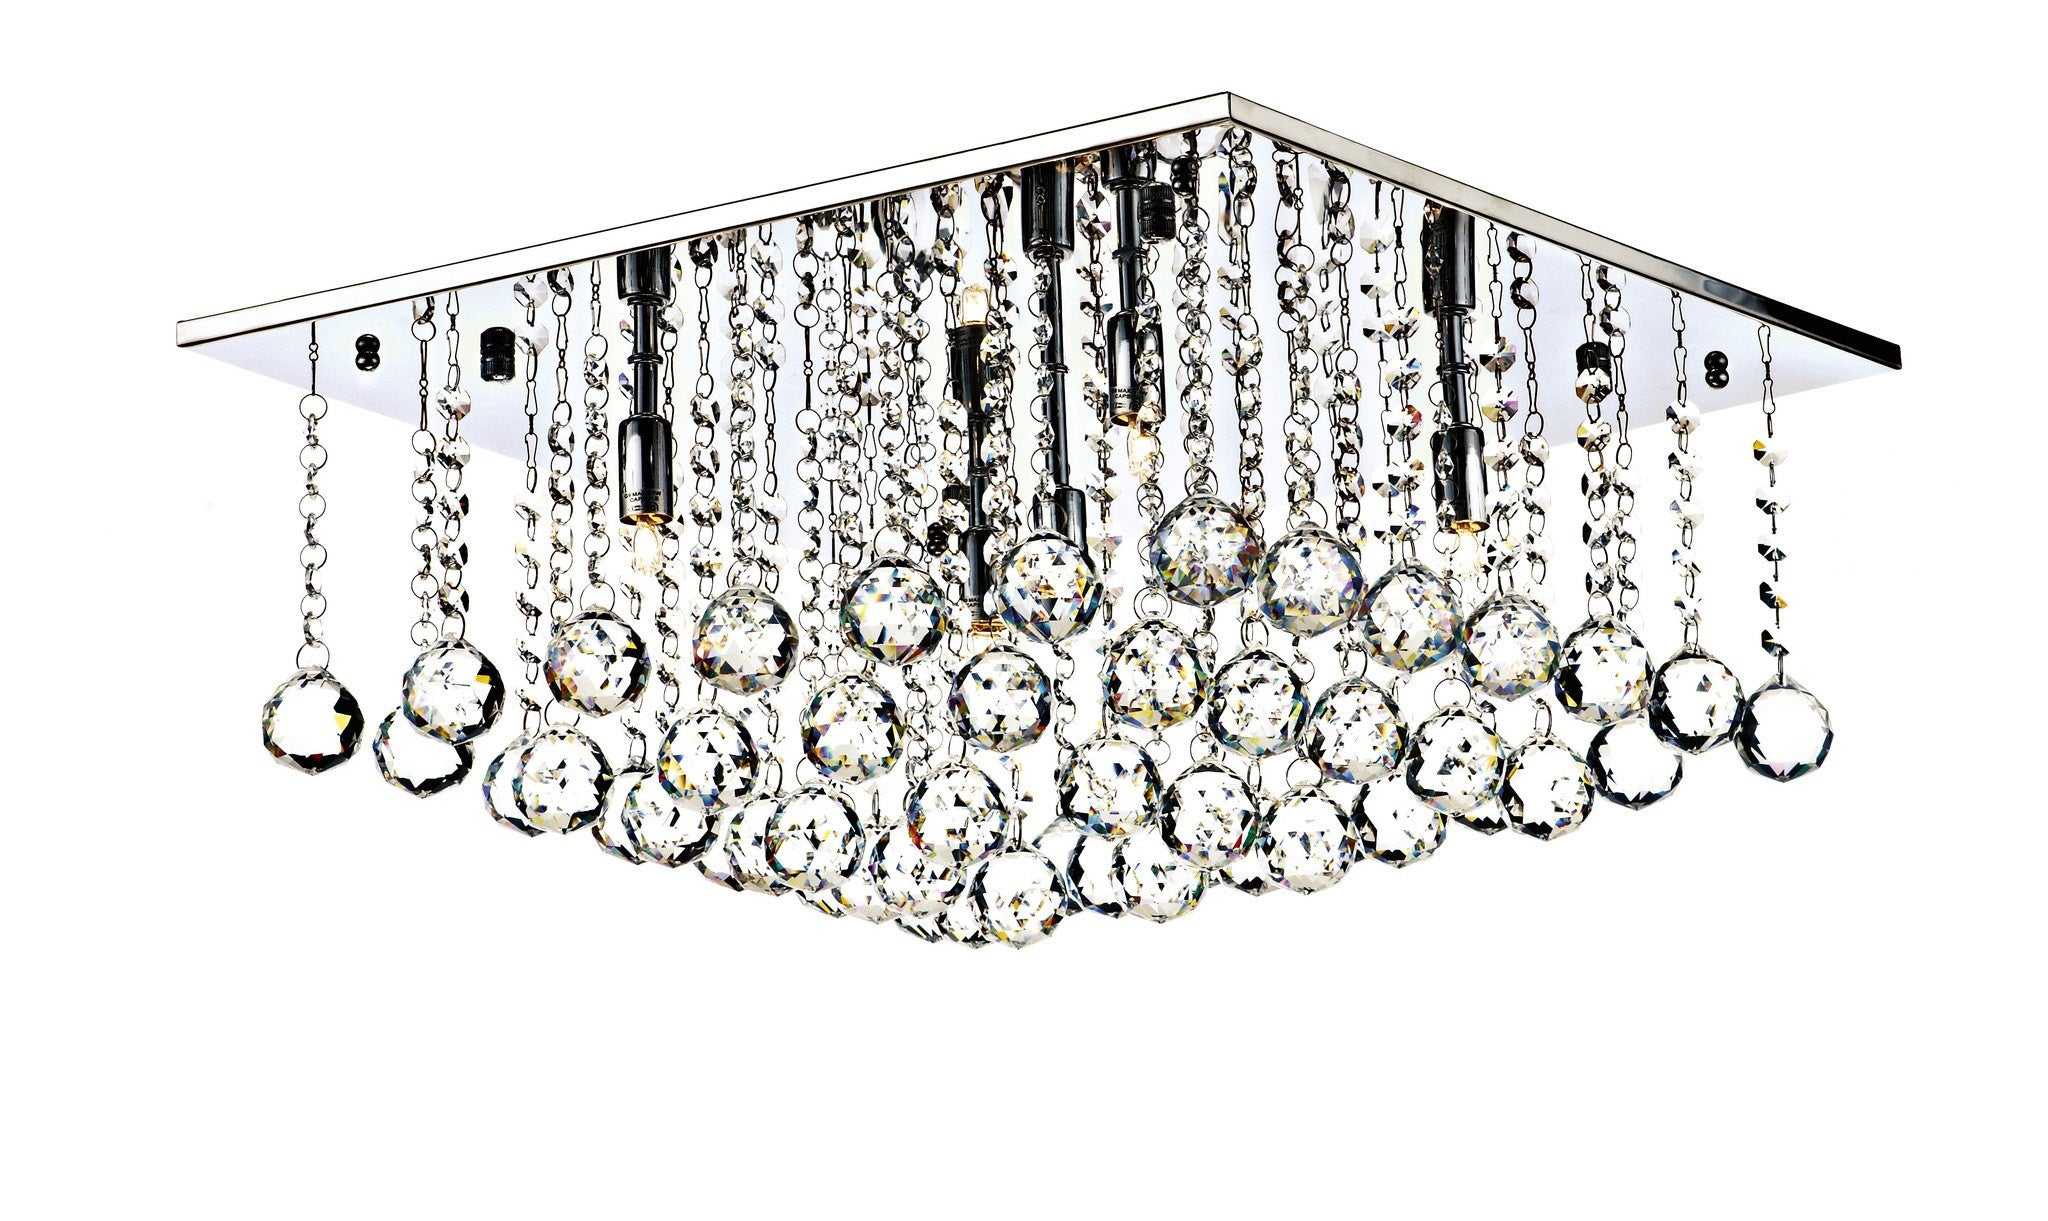 Abacus chrome 5 lamp ceiling light london lighting abacus chrome 5 lamp ceiling light london lighting 1 aloadofball Image collections